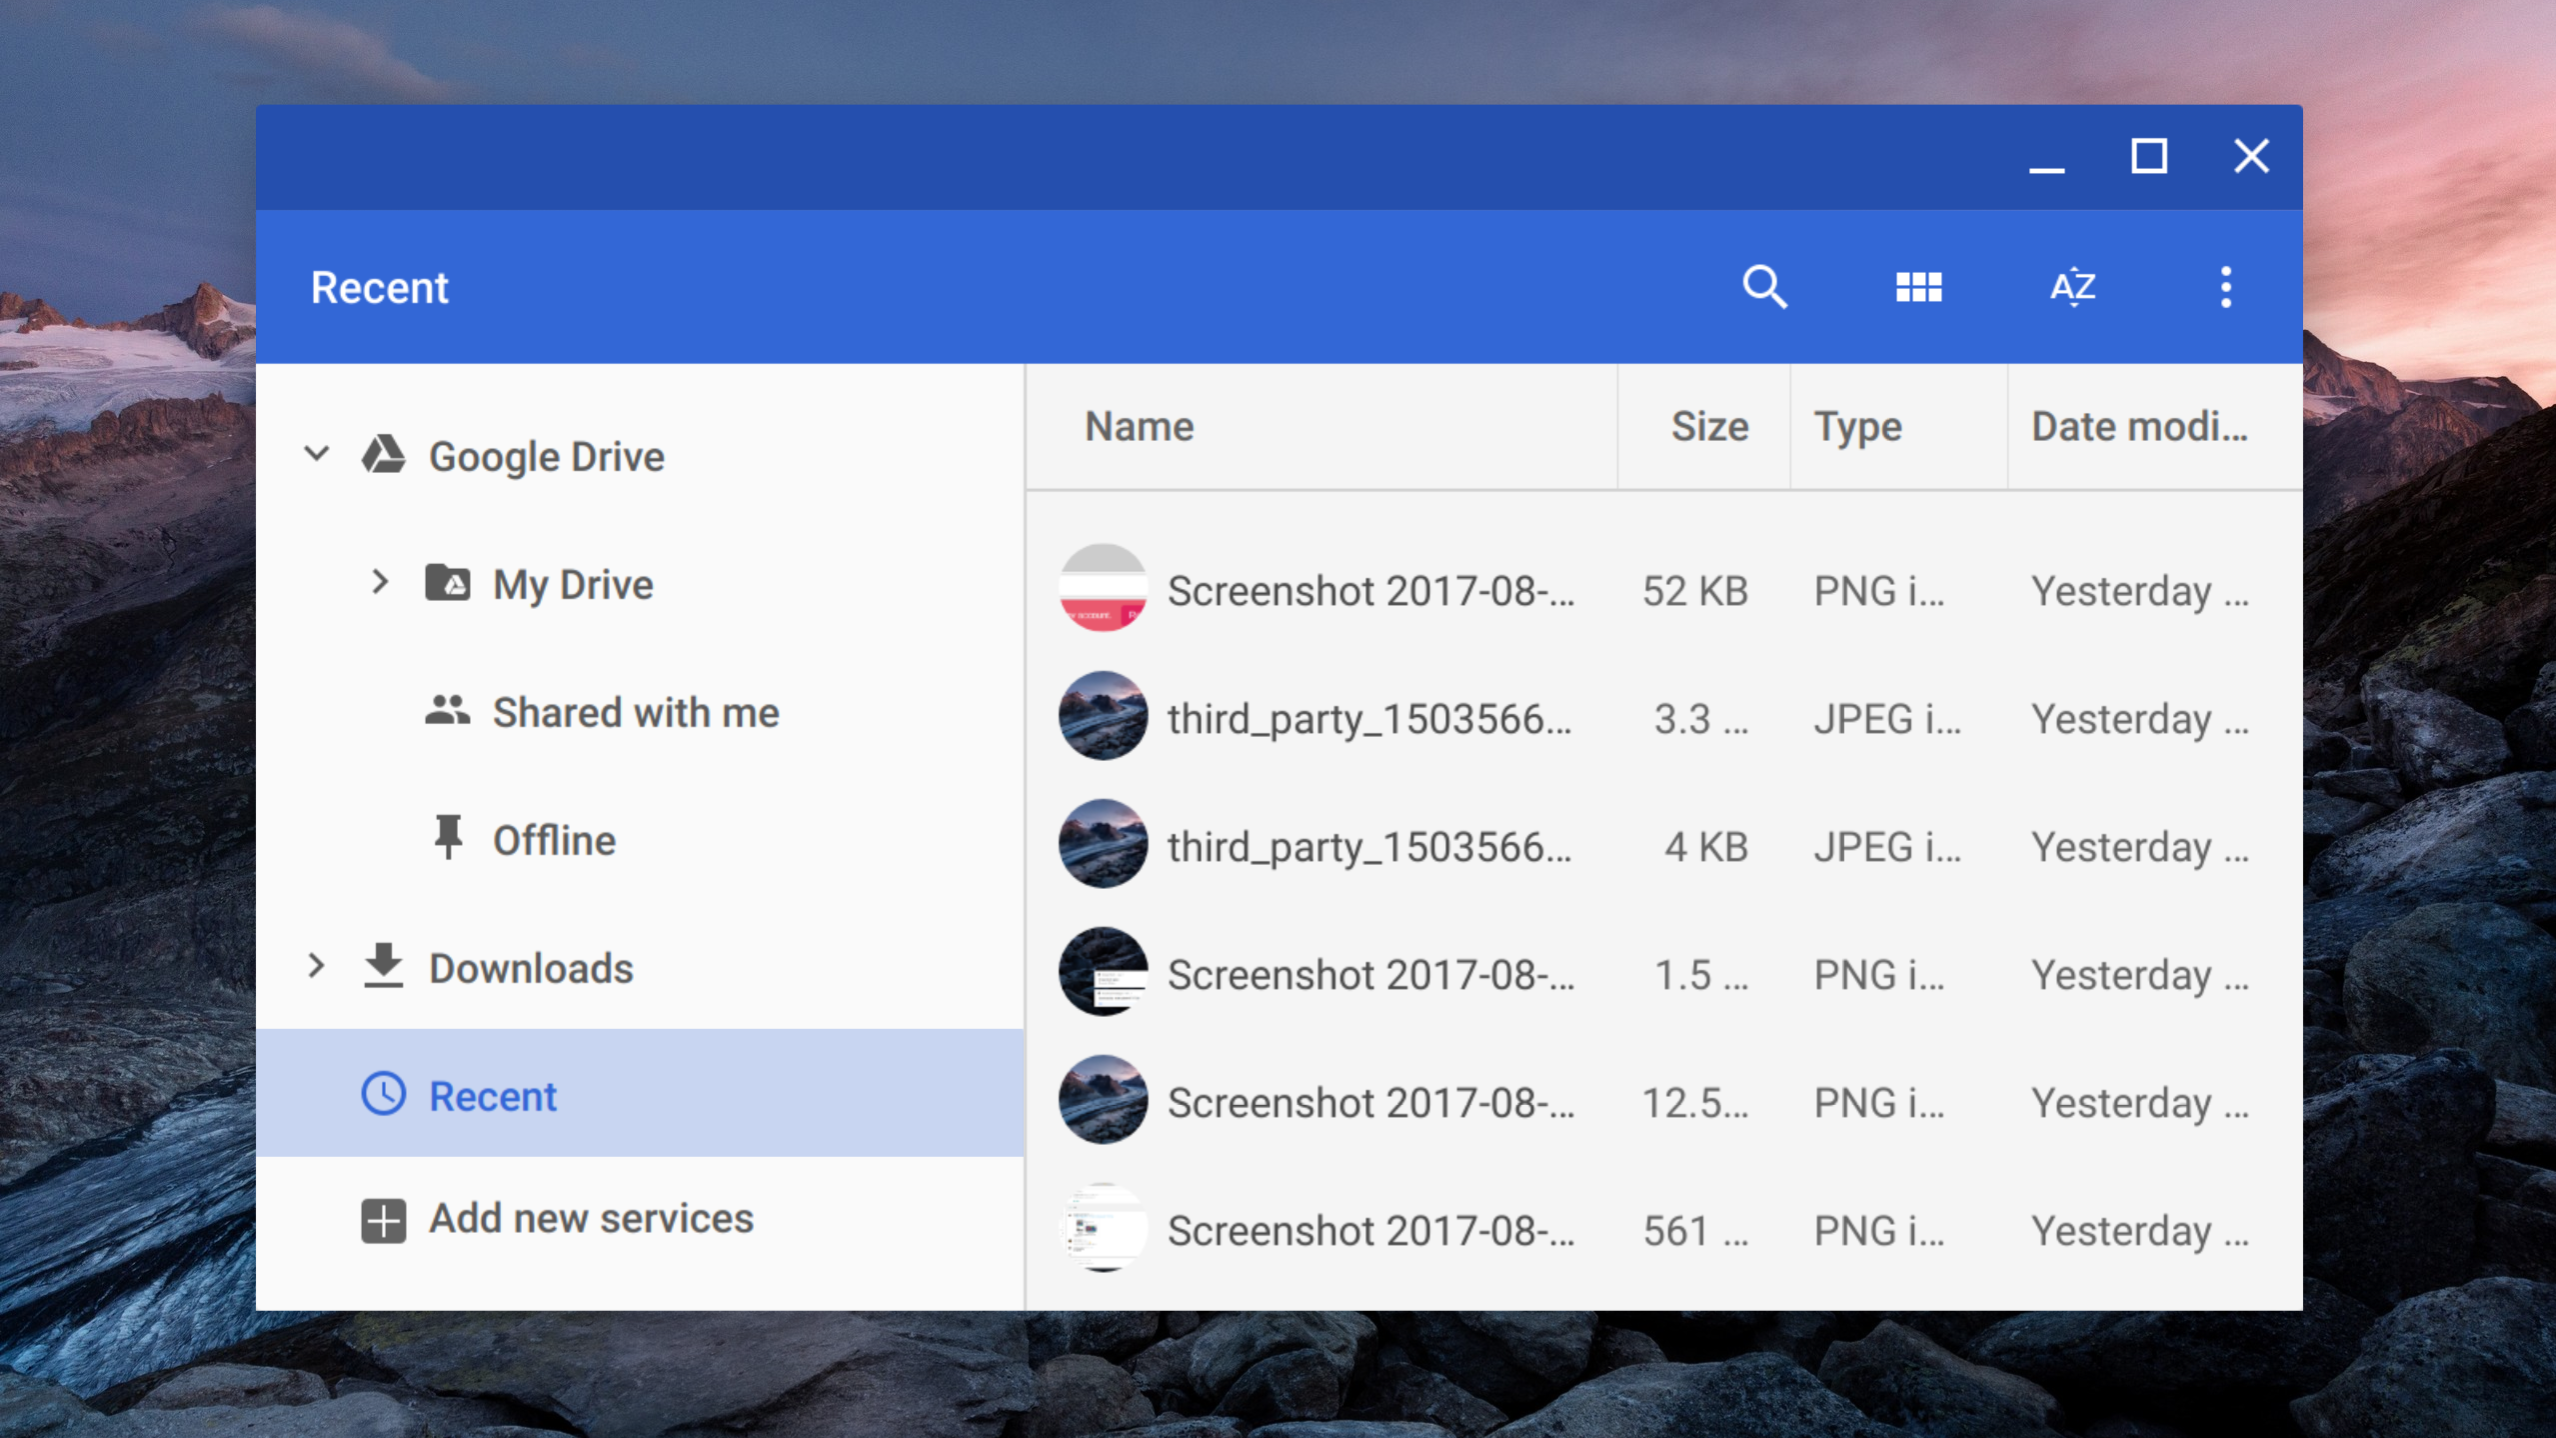 Chromebooks will soon have a recent folder for finding your latest chromebooks arent just for a quick bit of browsing these days some people use them for general productivity including those of us here at android police ccuart Images